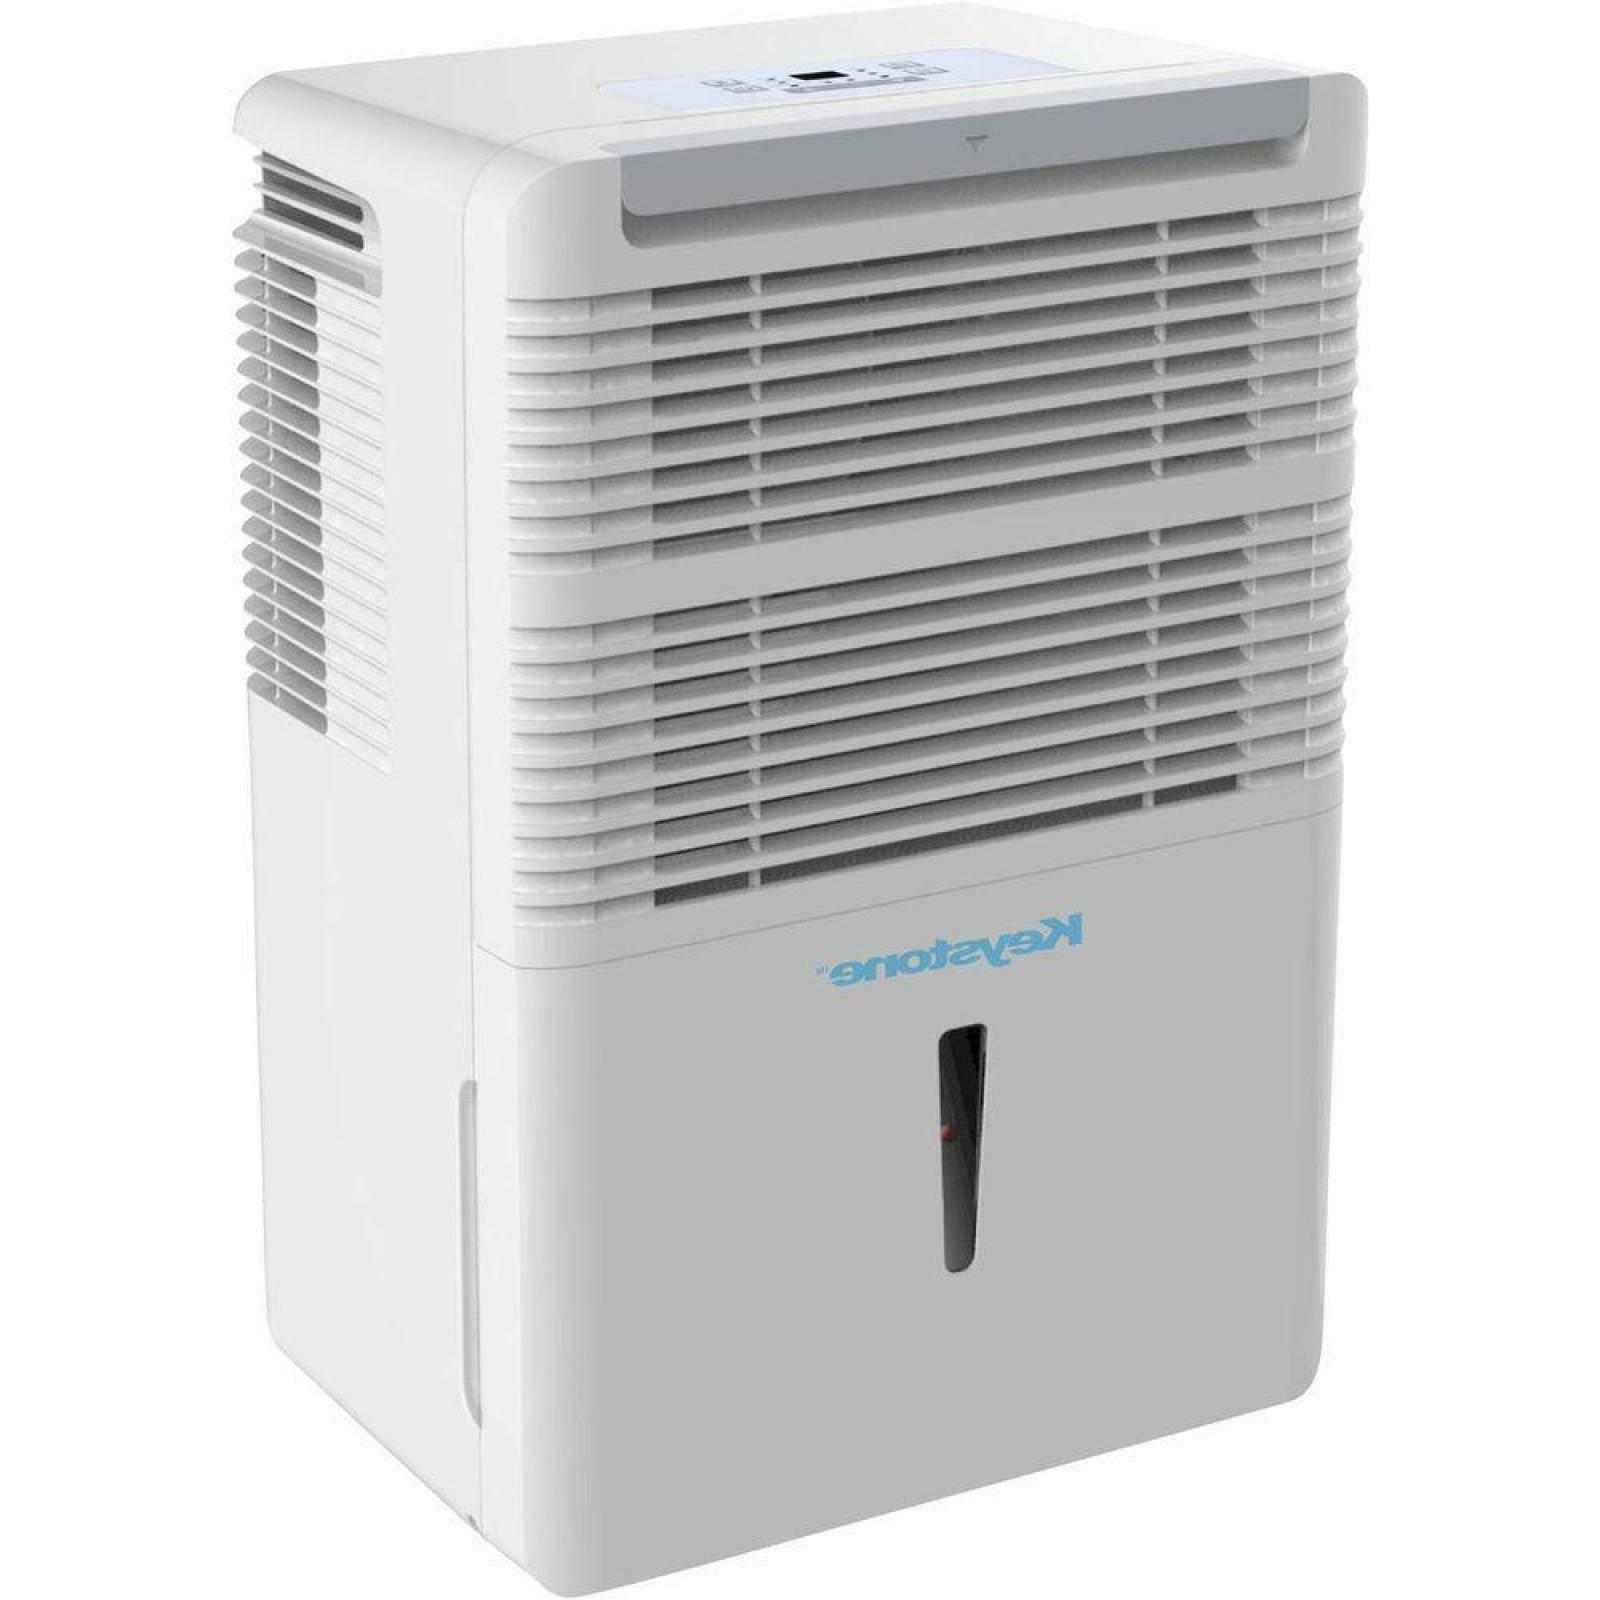 Keystone Energy Star 50 Pint Dehumidifier with Electronic Co